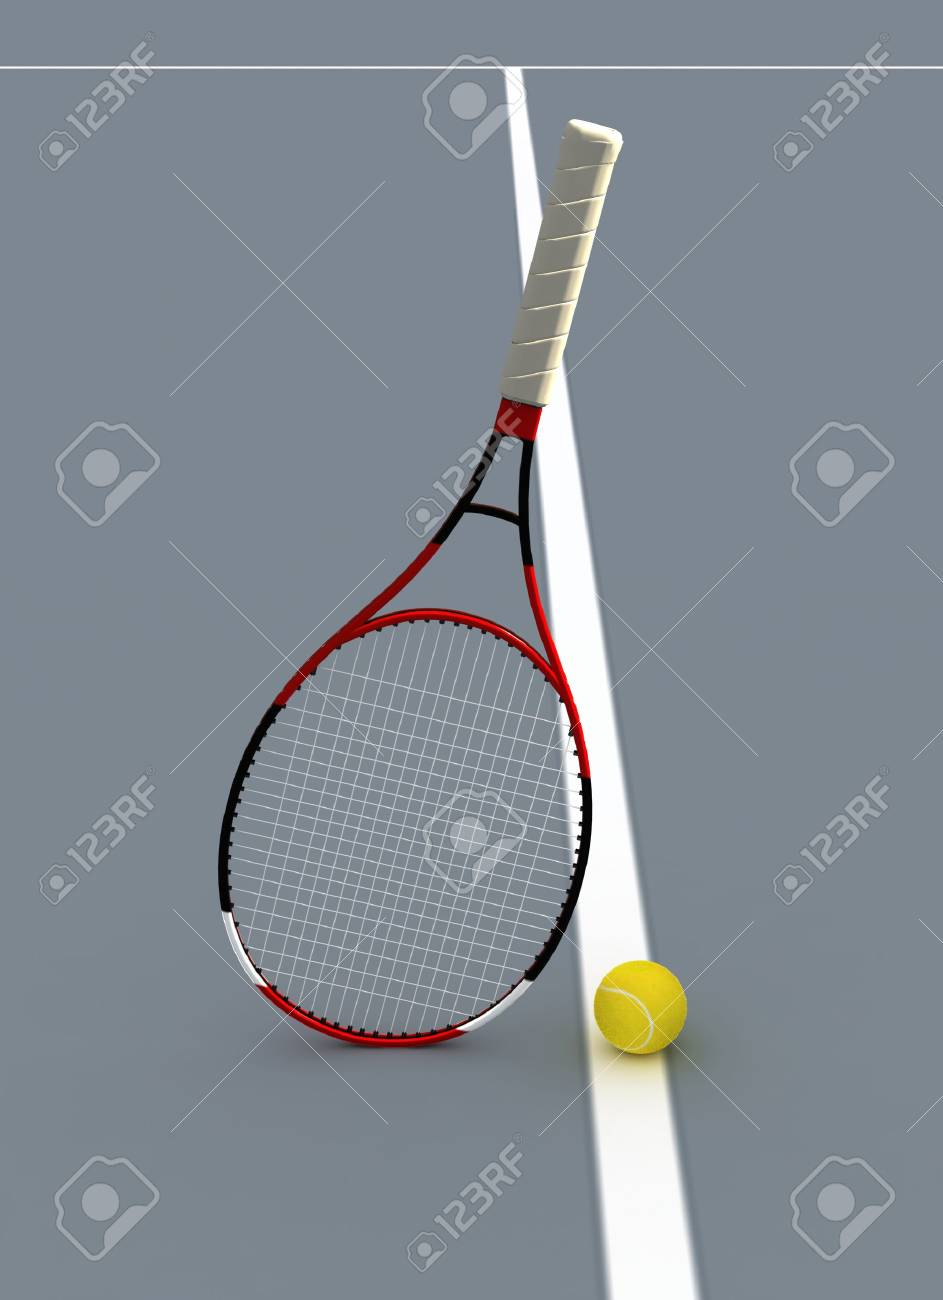 Tennis Racket and Ball on Court. Stock Photo - 3461632